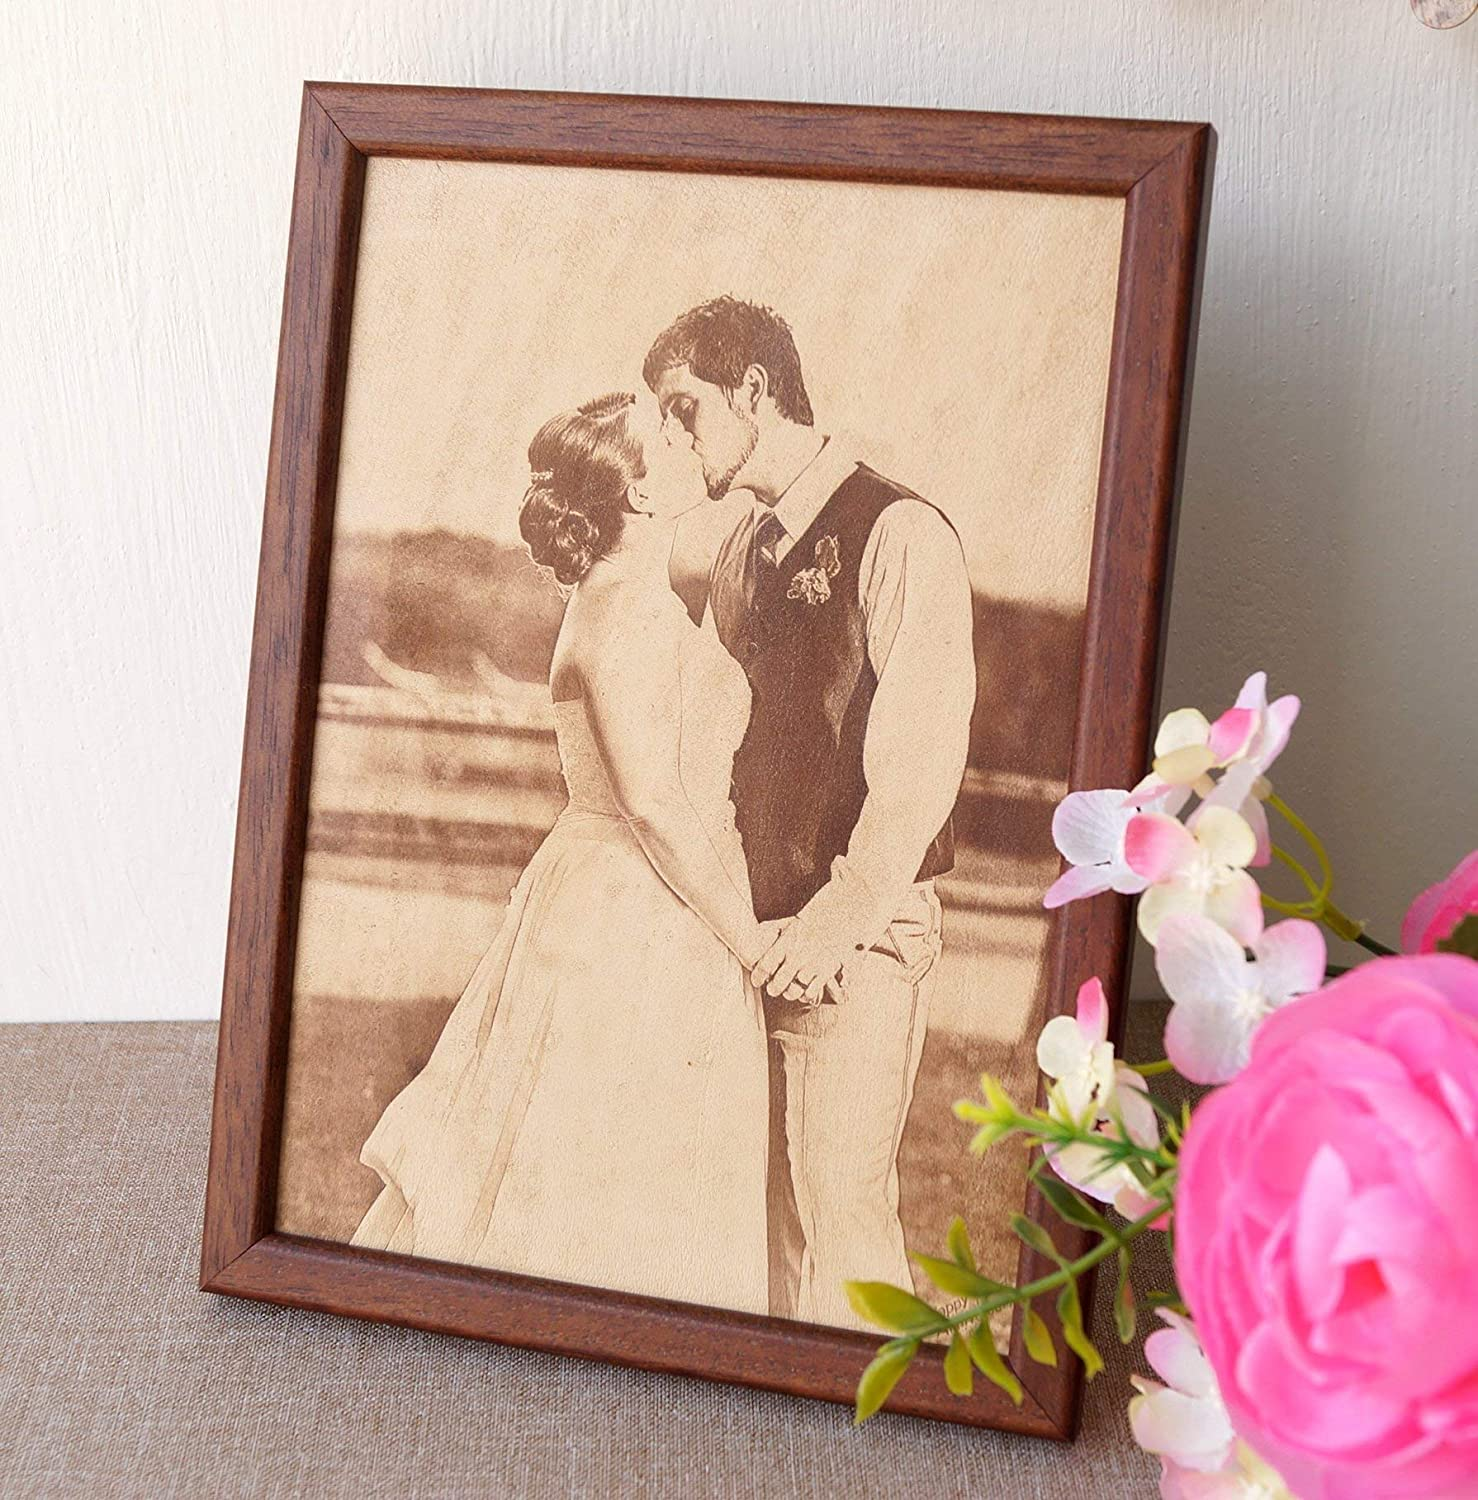 custom engraved framed picture unique gift.Engraved photograph on real leather, 3rd wedding anniversary gift idea leather engraving